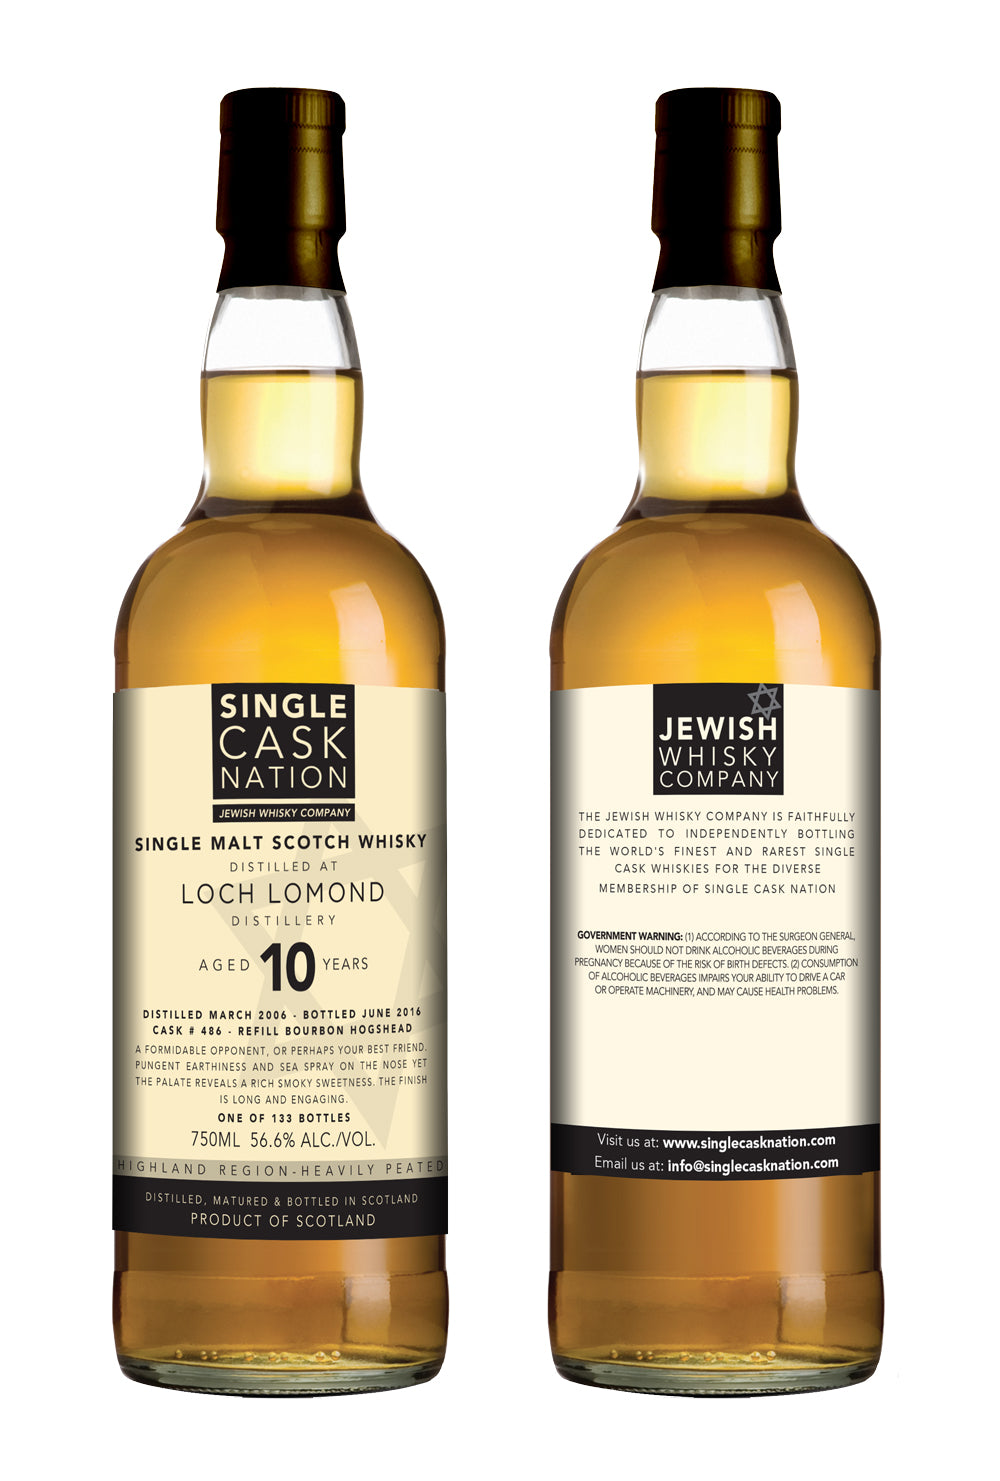 Loch Lomond 10, Refill Bourbon Hogshead - ARCHIVED